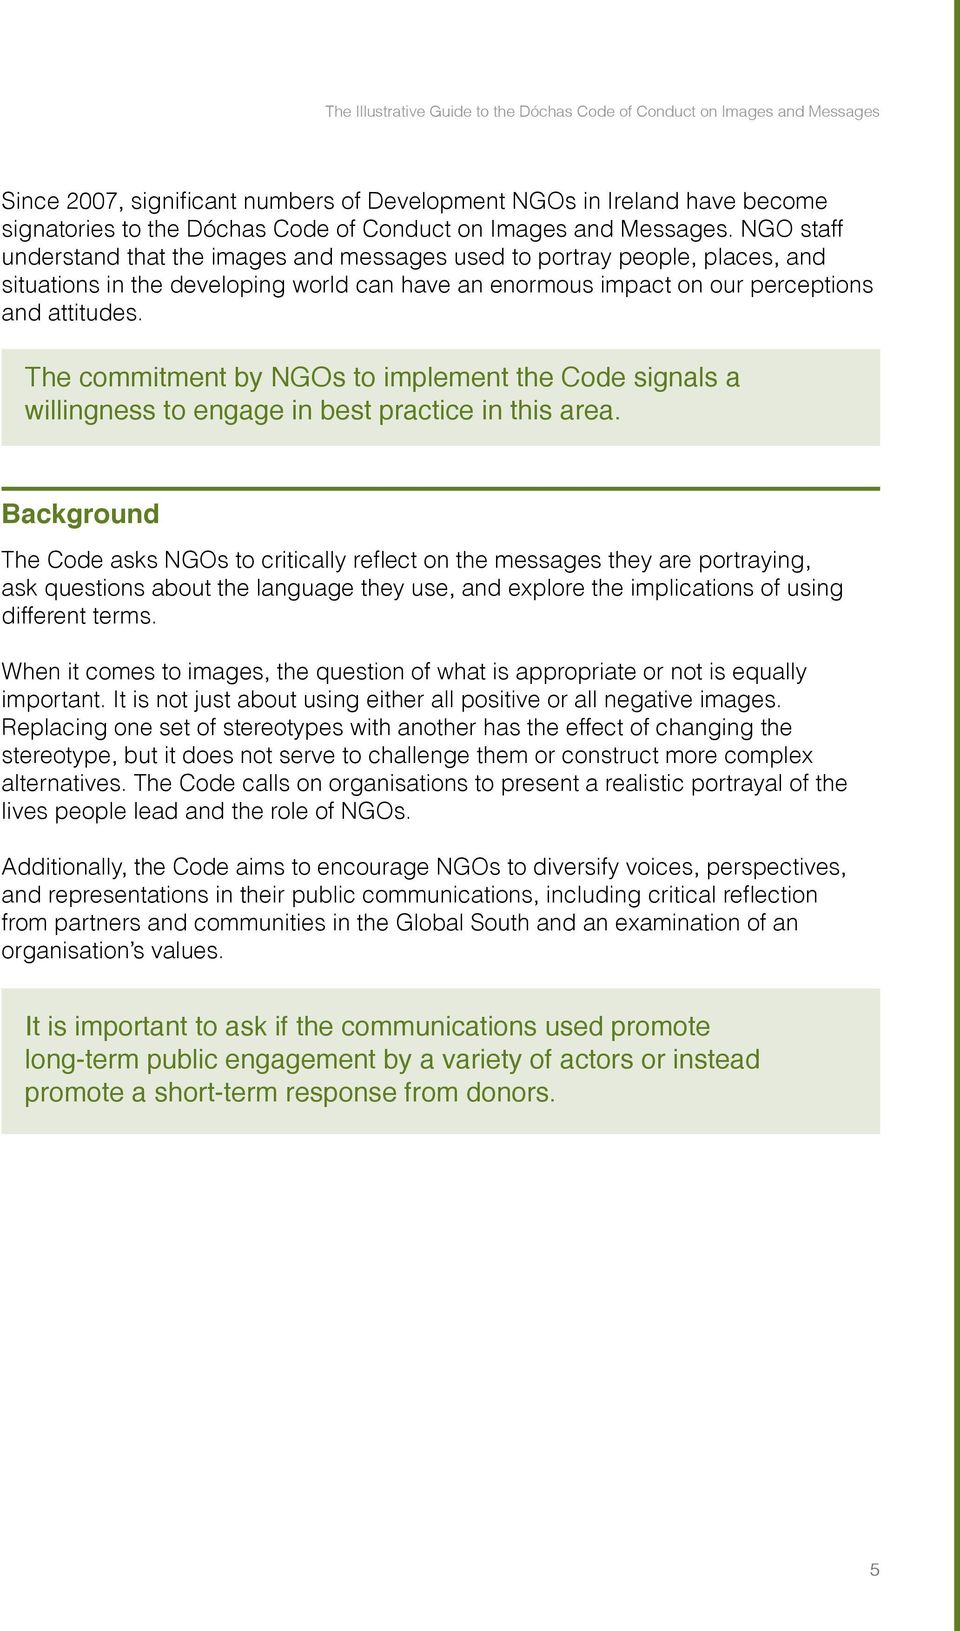 The commitment by NGOs to implement the Code signals a willingness to engage in best practice in this area.